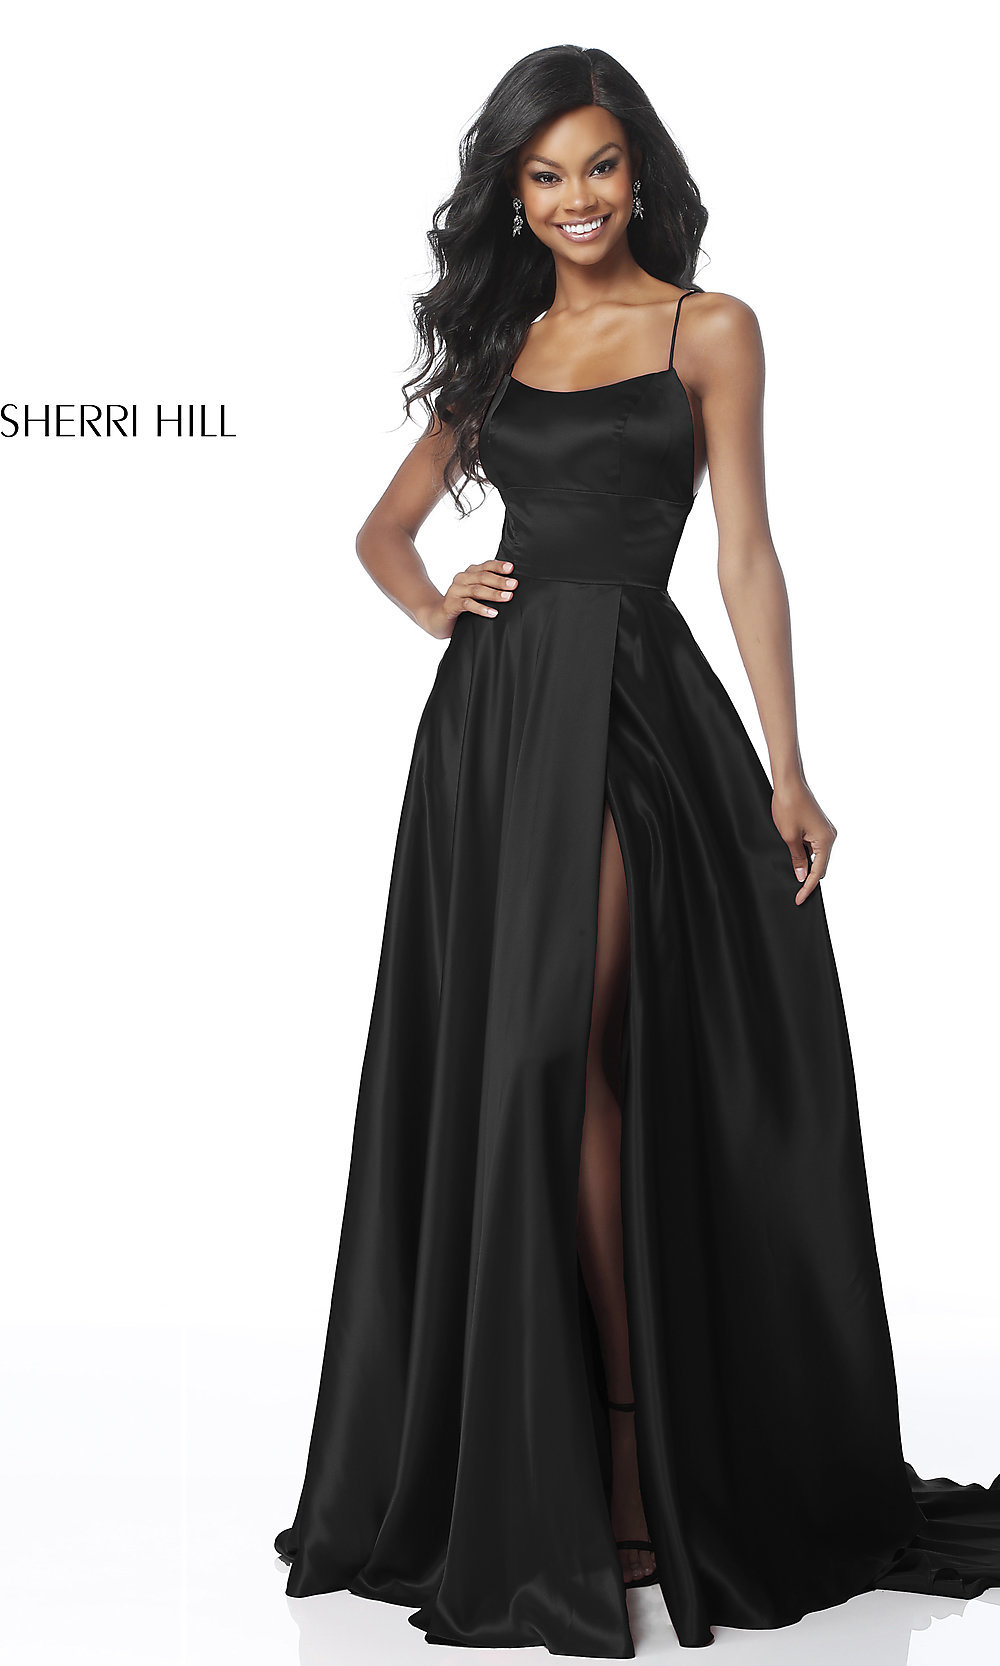 7277cd1d97fe Long Sherri Hill Open-Back Formal Prom Dress -PromGirl